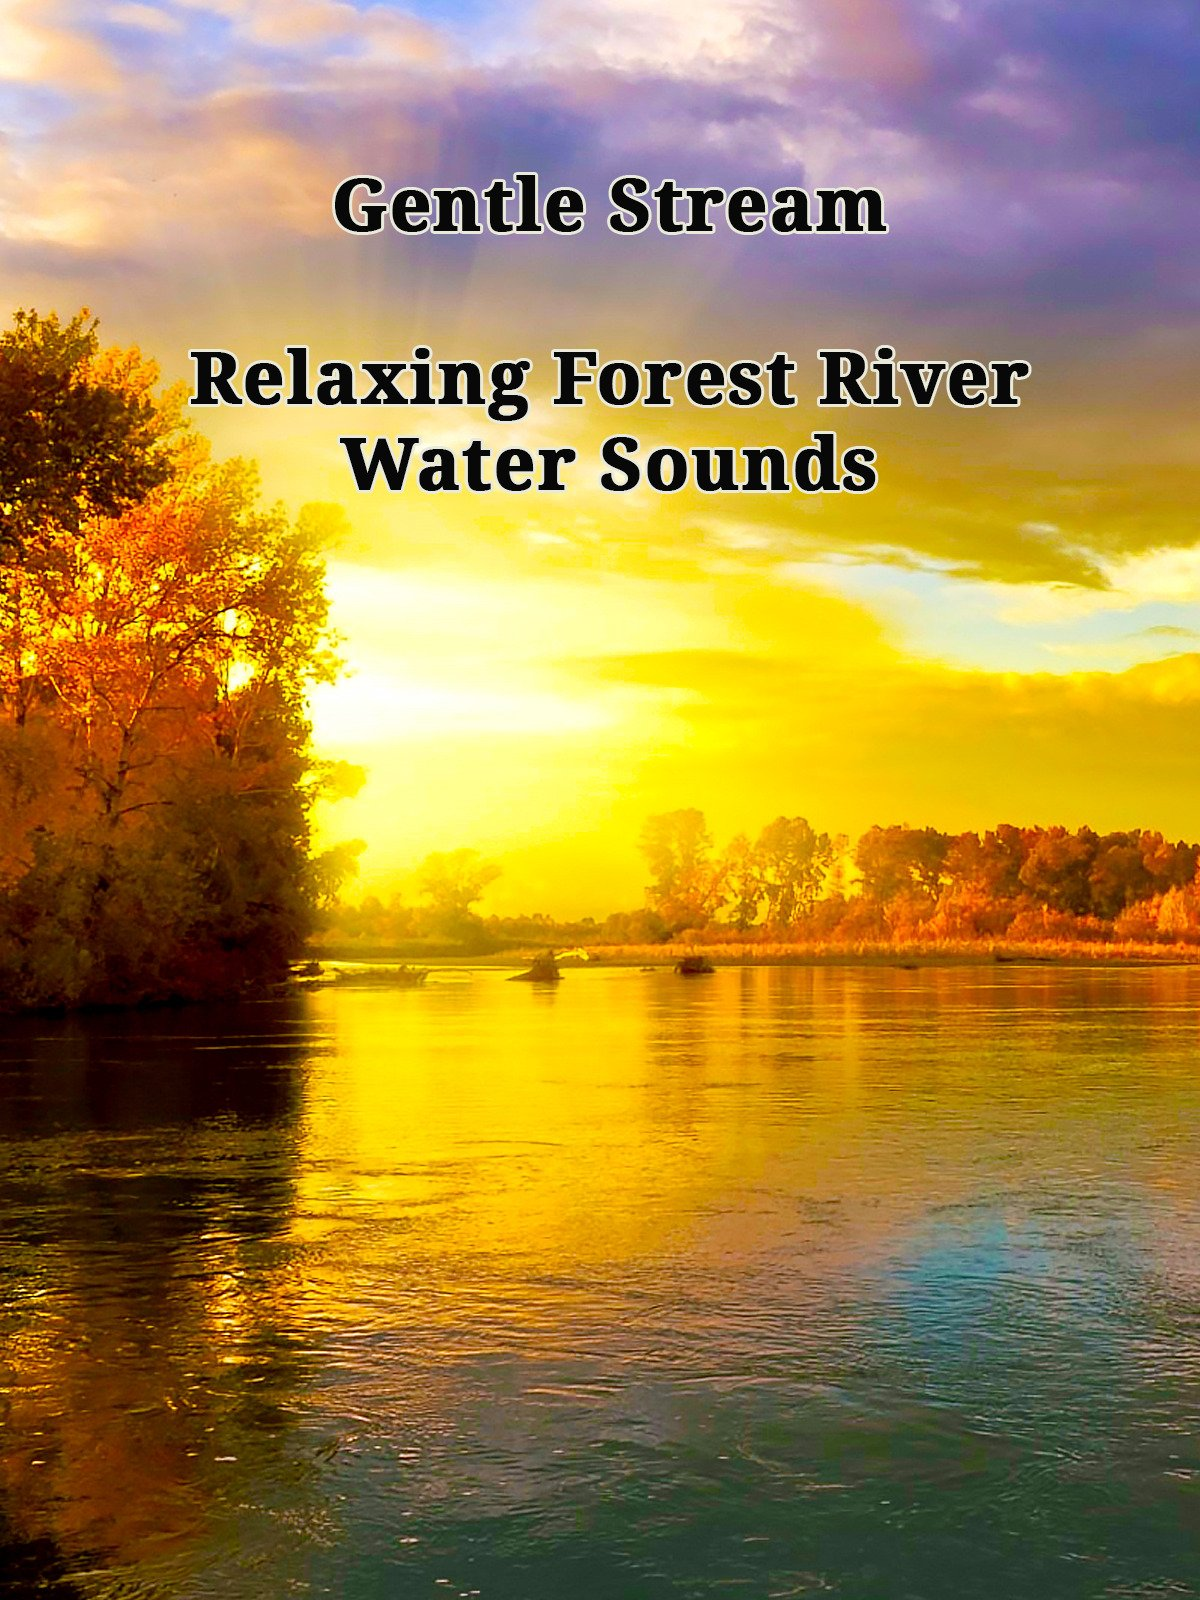 Gentle Stream: Relaxing Forest River Water Sounds on Amazon Prime Instant Video UK